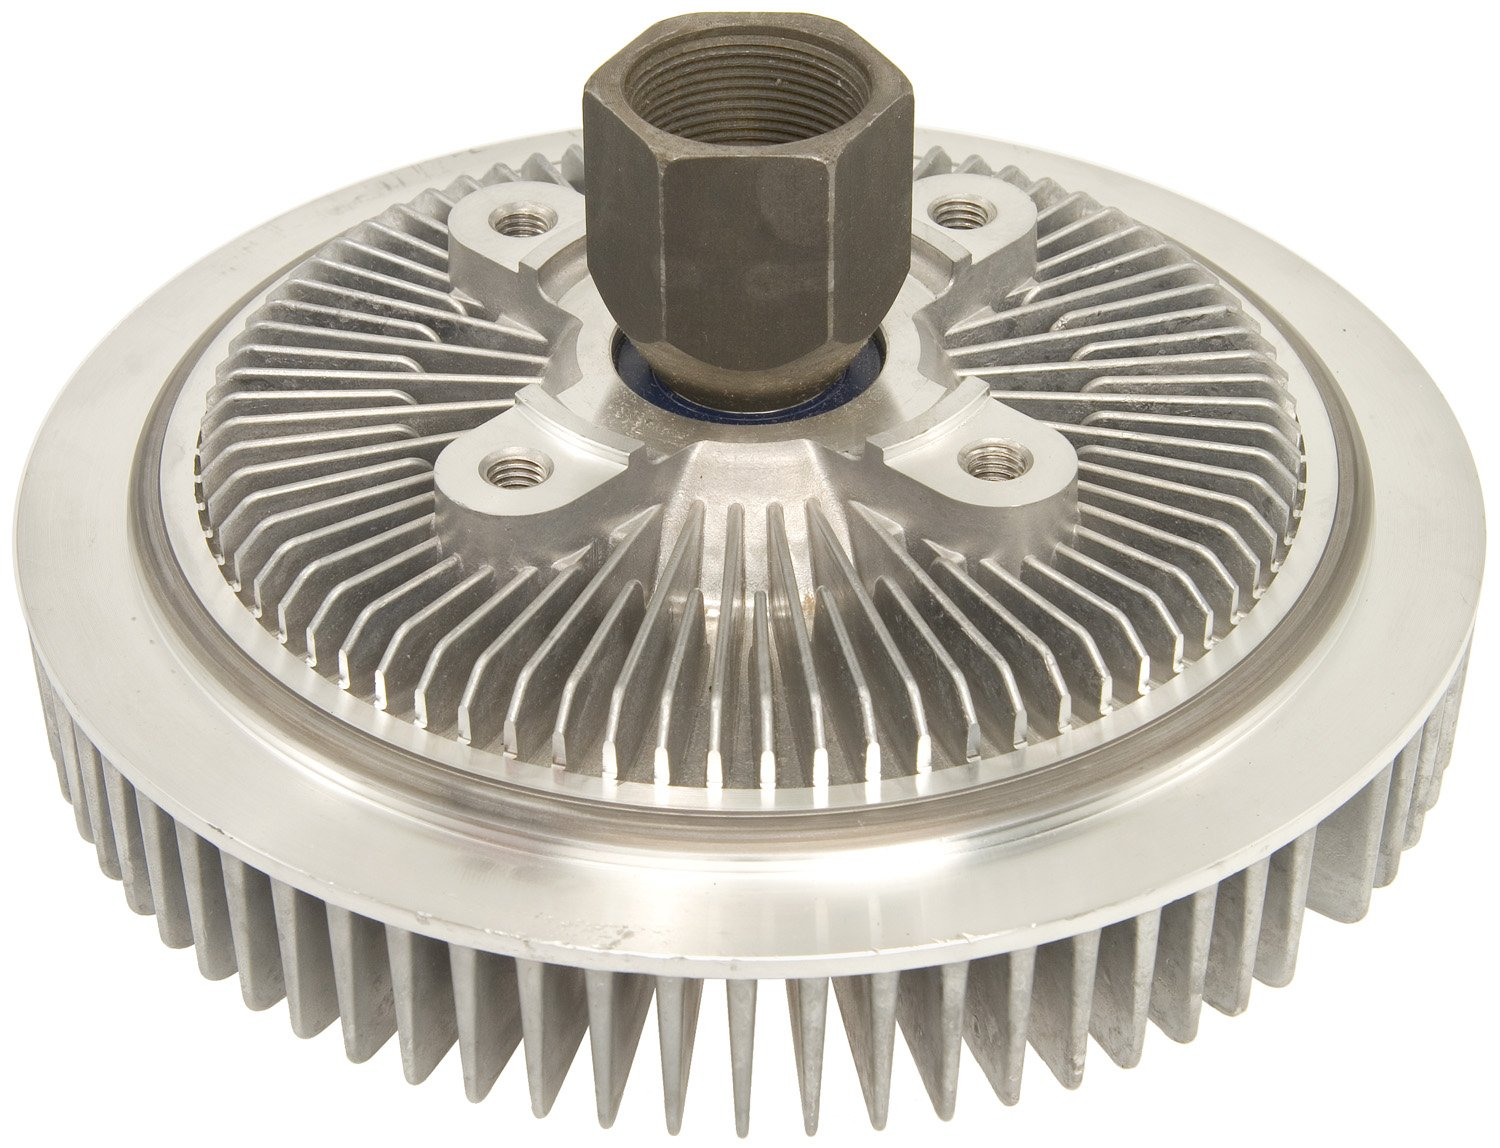 Hayden Automotive 2738 Premium Fan Clutch